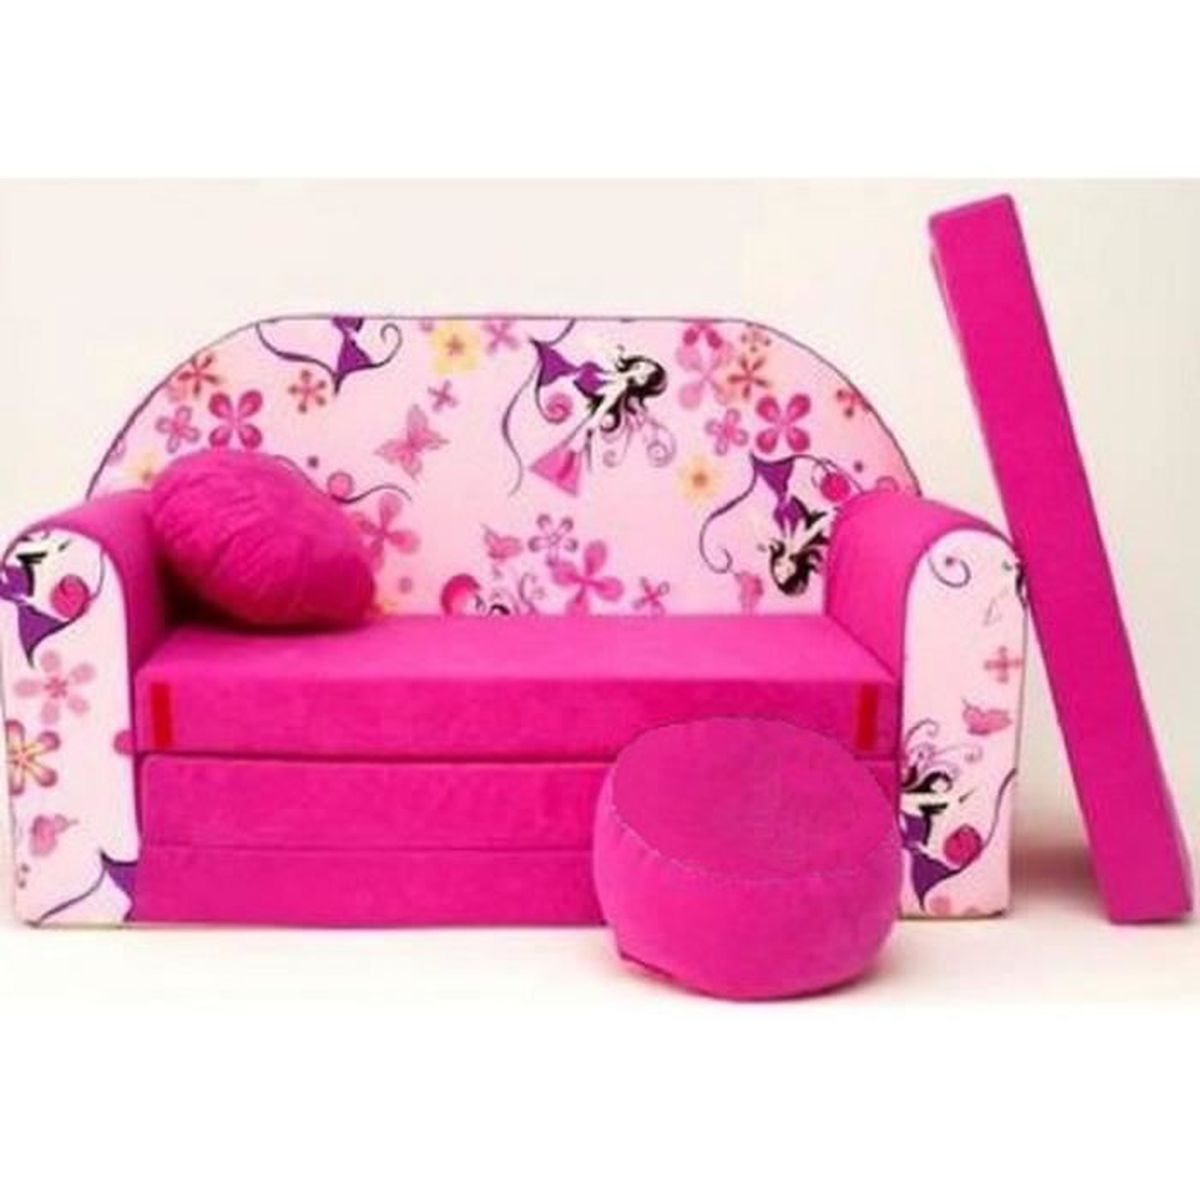 canape sofa enfant 2 places convertible rose avec coussin. Black Bedroom Furniture Sets. Home Design Ideas